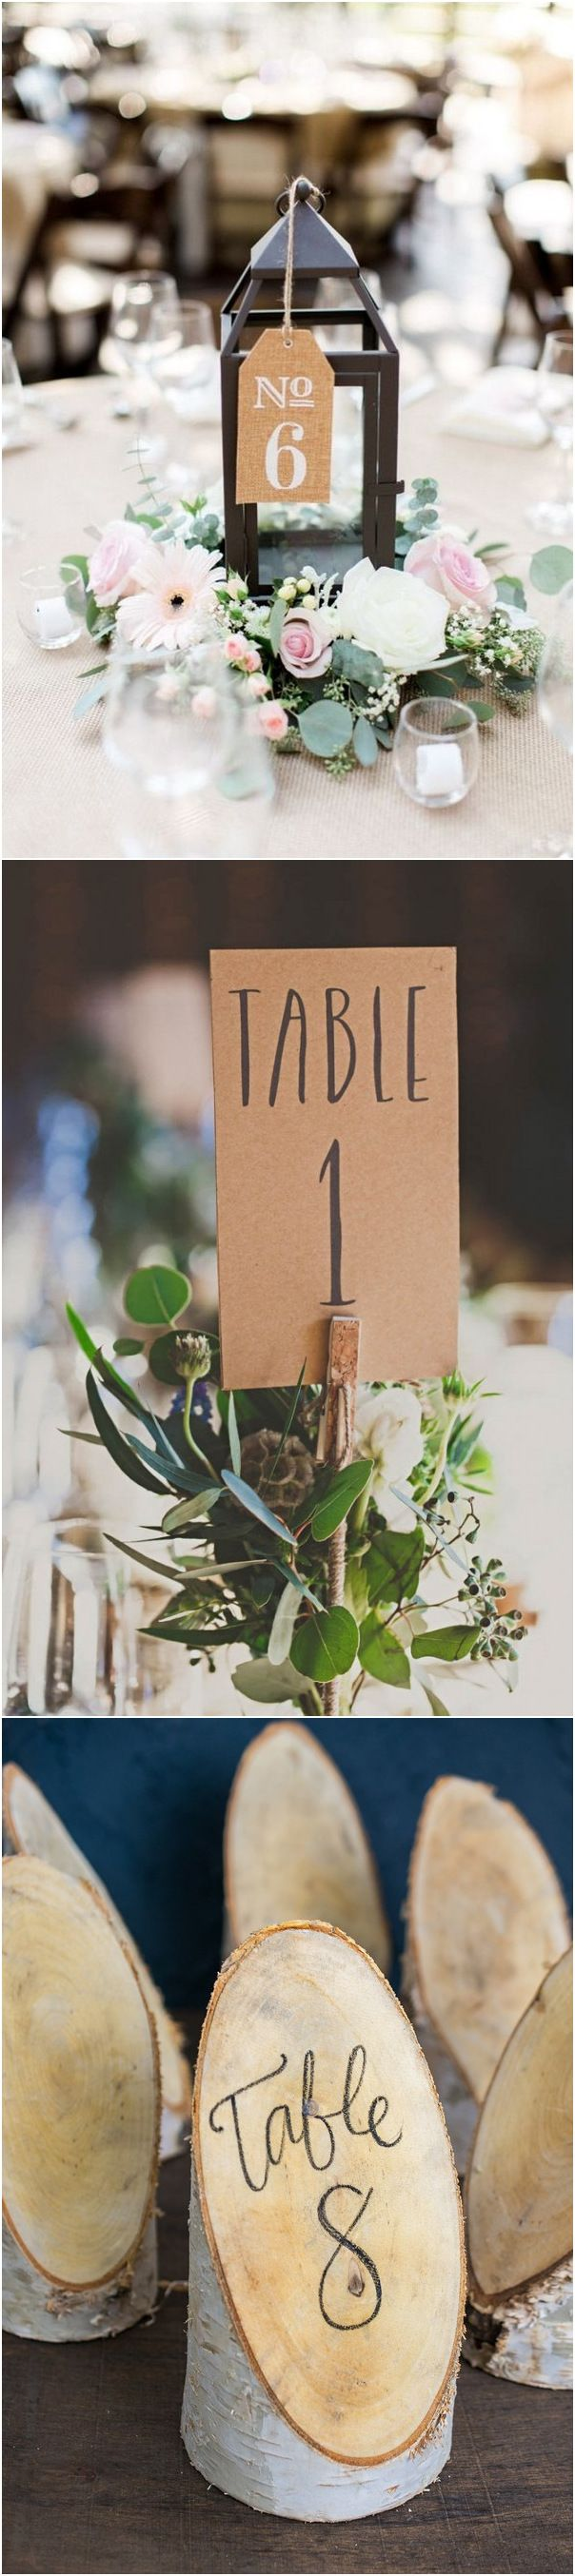 trending wedding table number decoration ideas